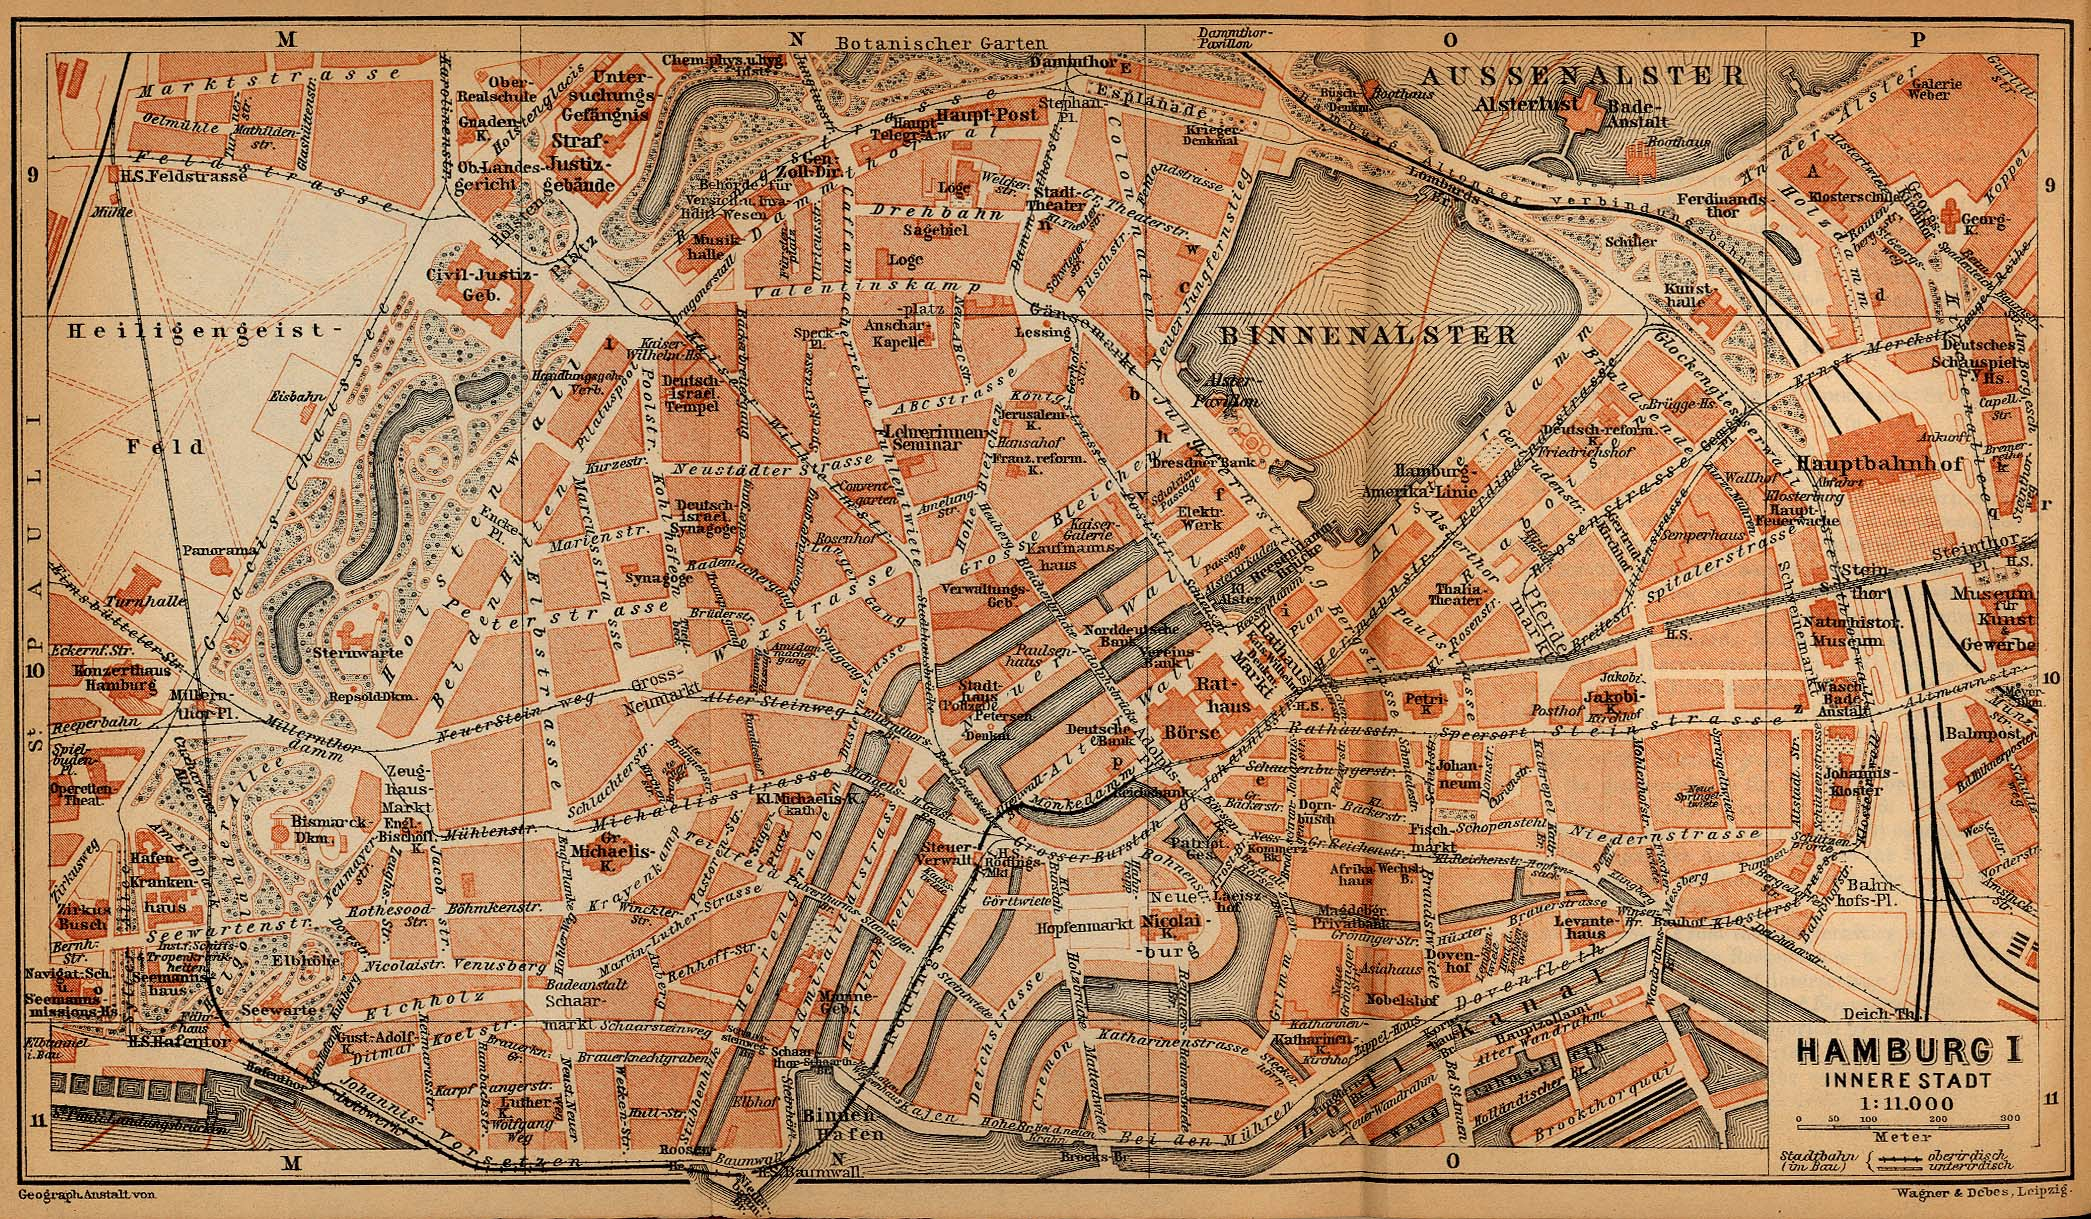 Hamburg (Inner Town) Map, Germany 1910